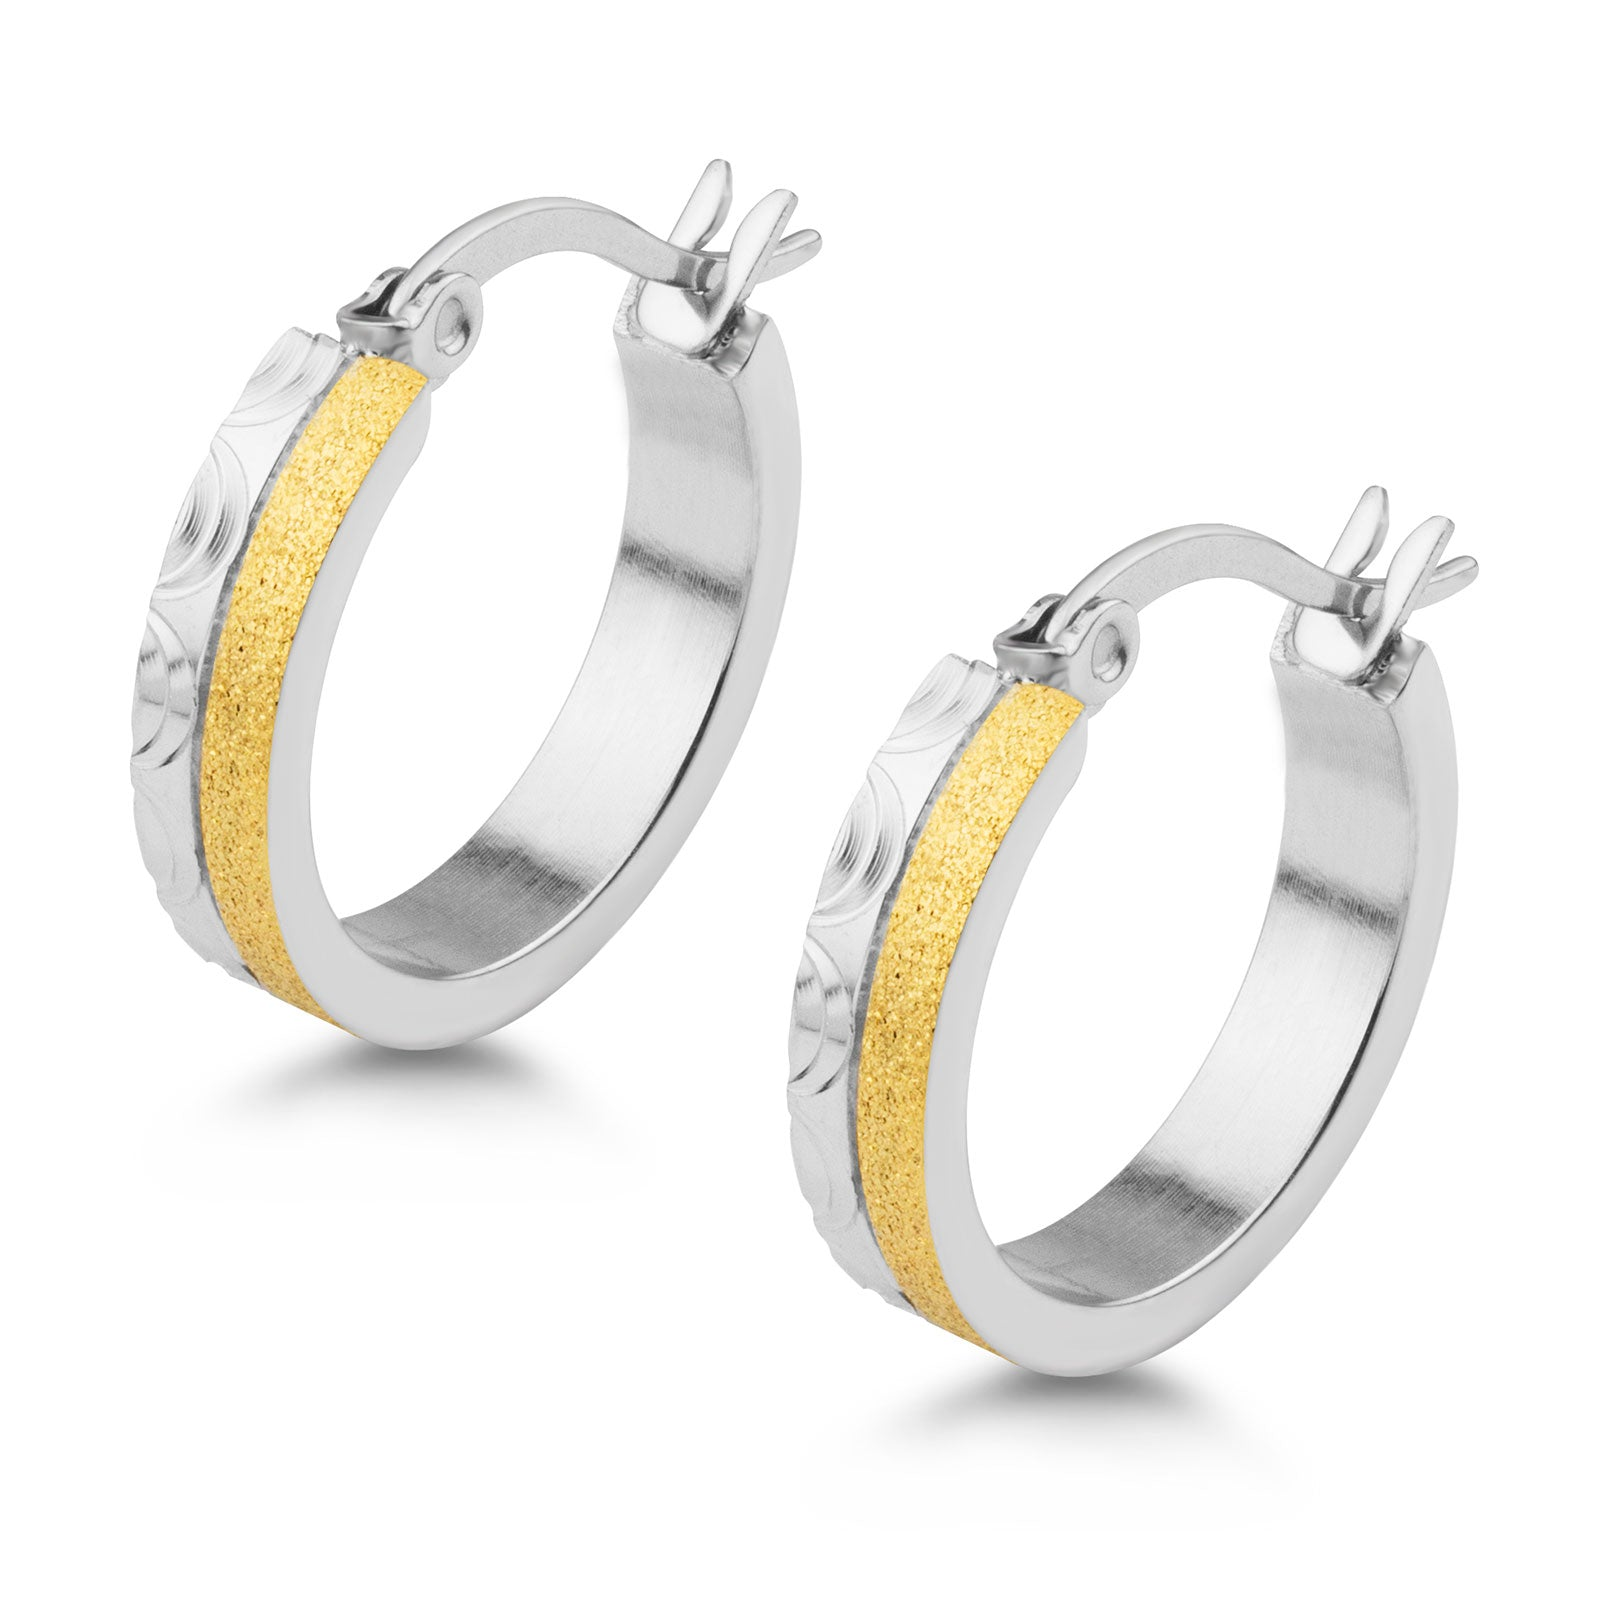 MNC-ER572-B Steel & Gold Hoop Earrings